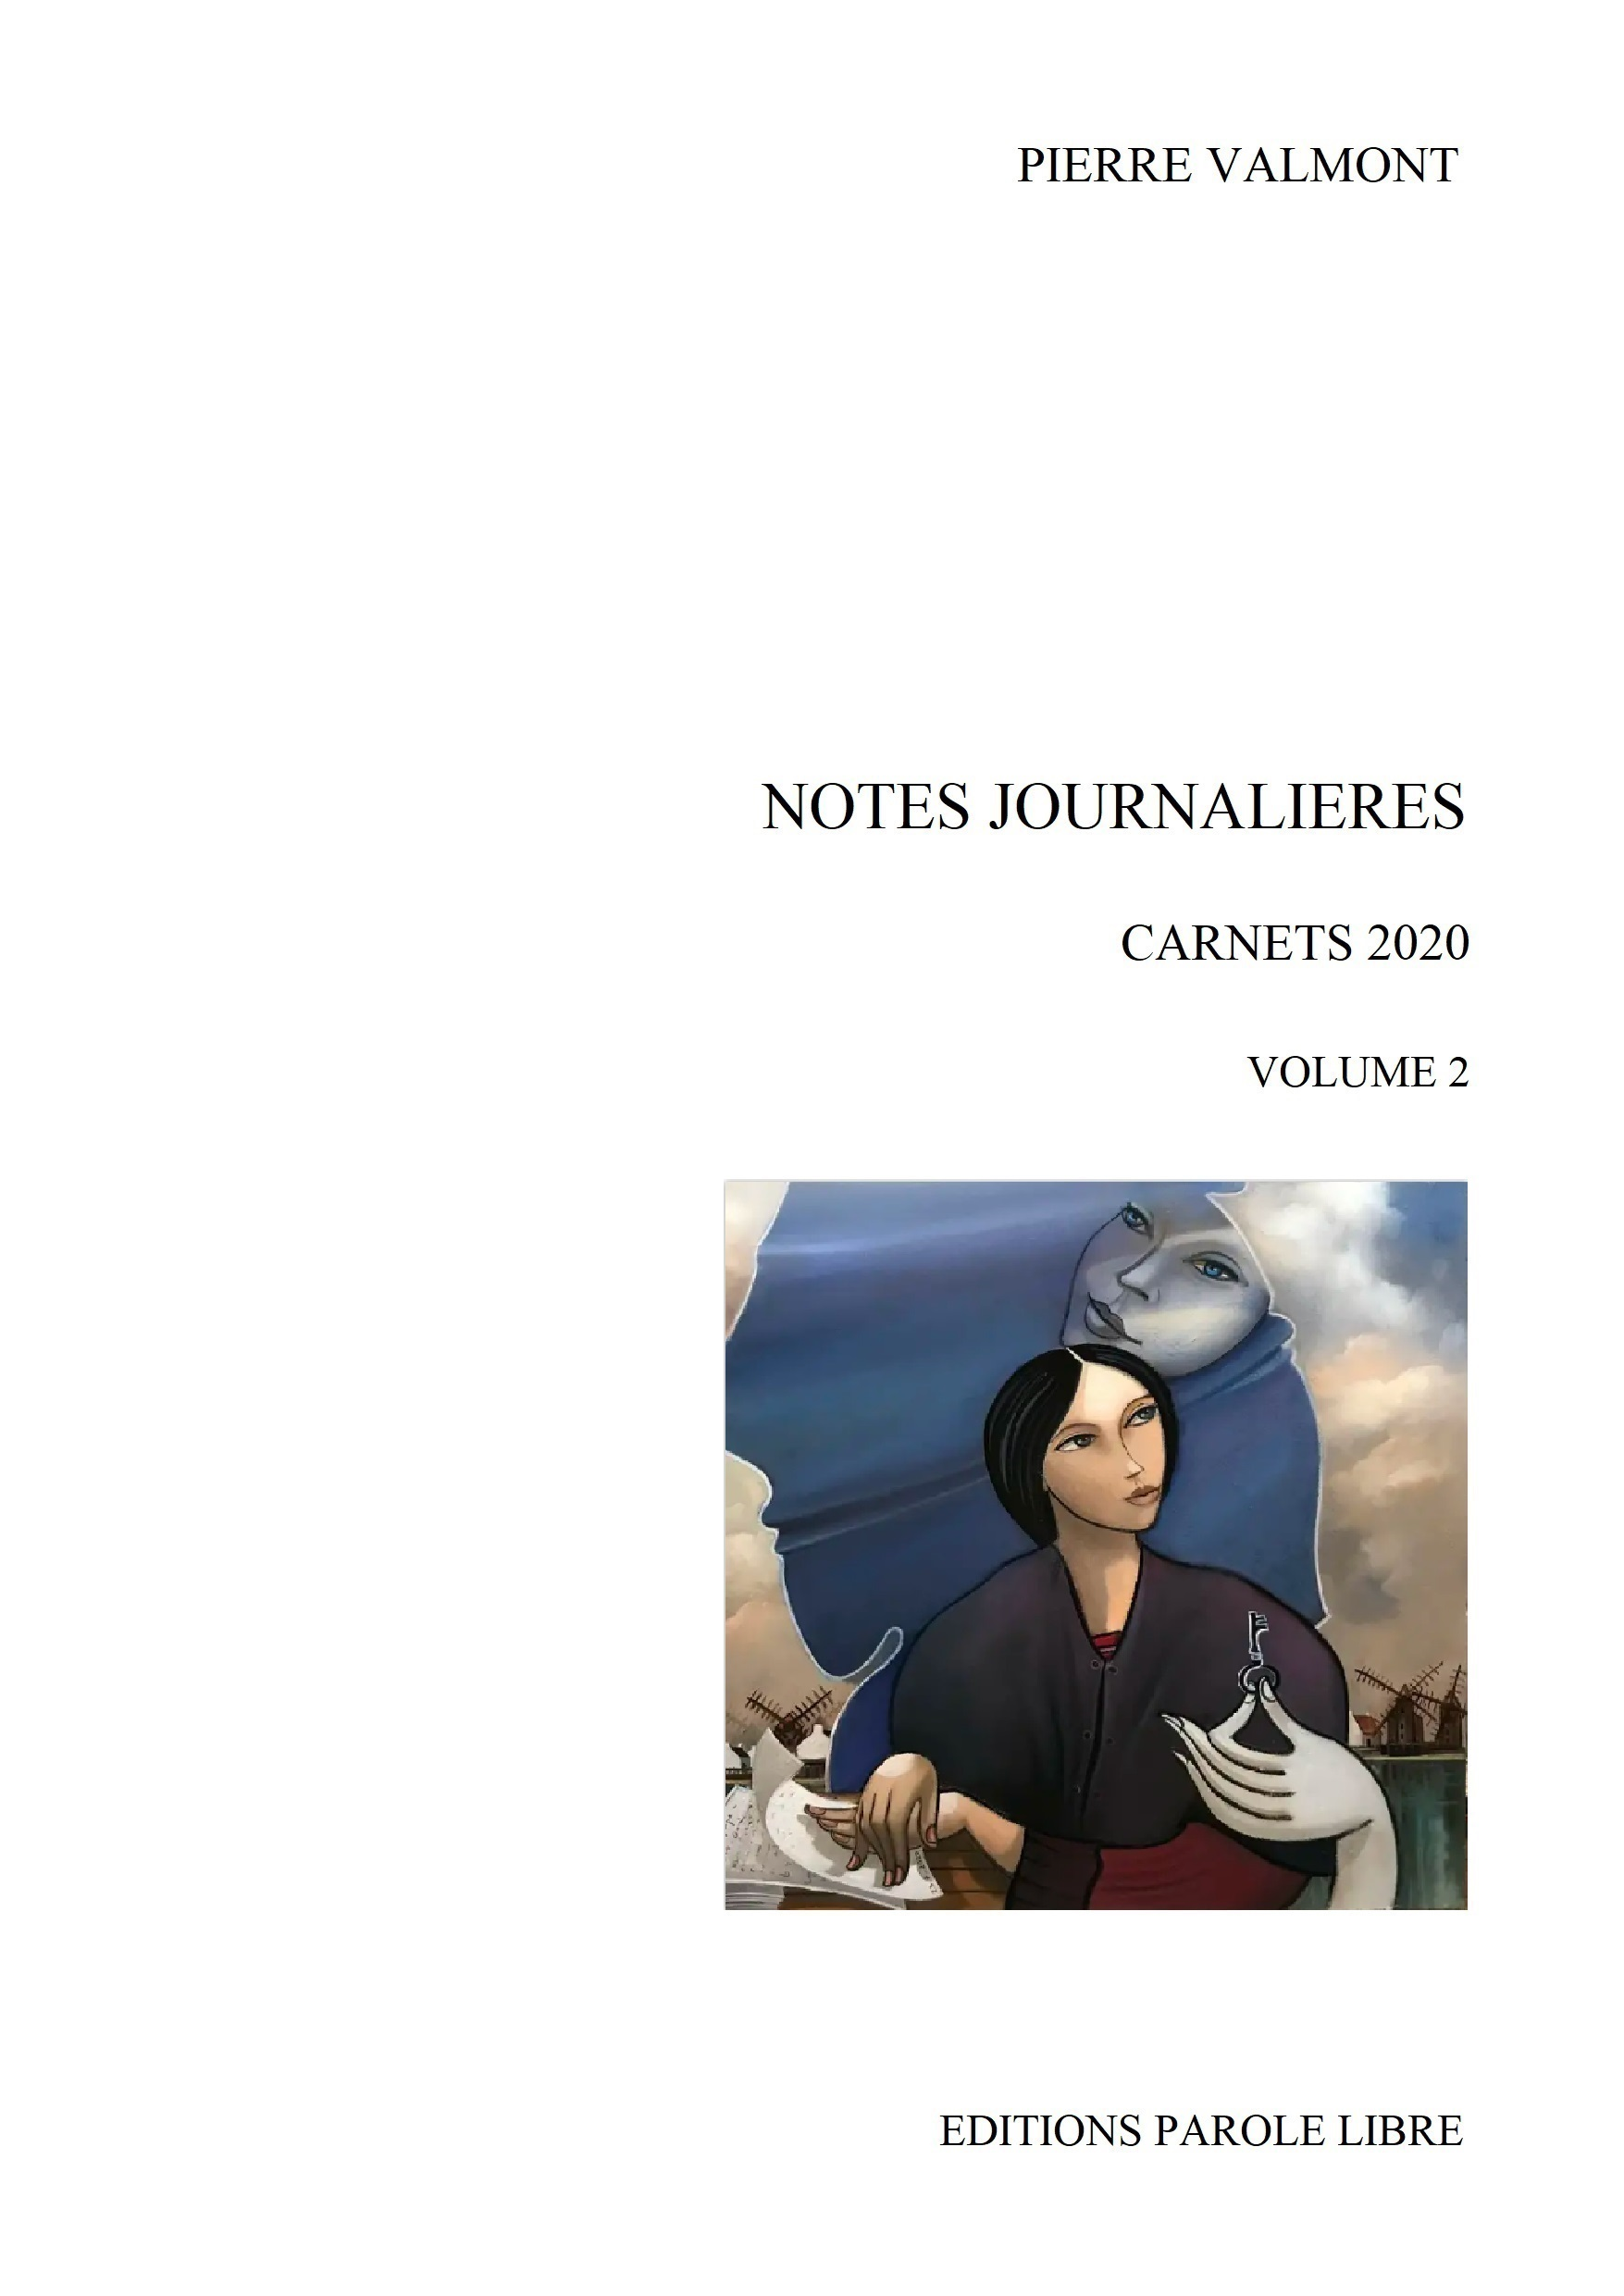 CARNETS 2020 NOTES JOURNALIERES (vol2)